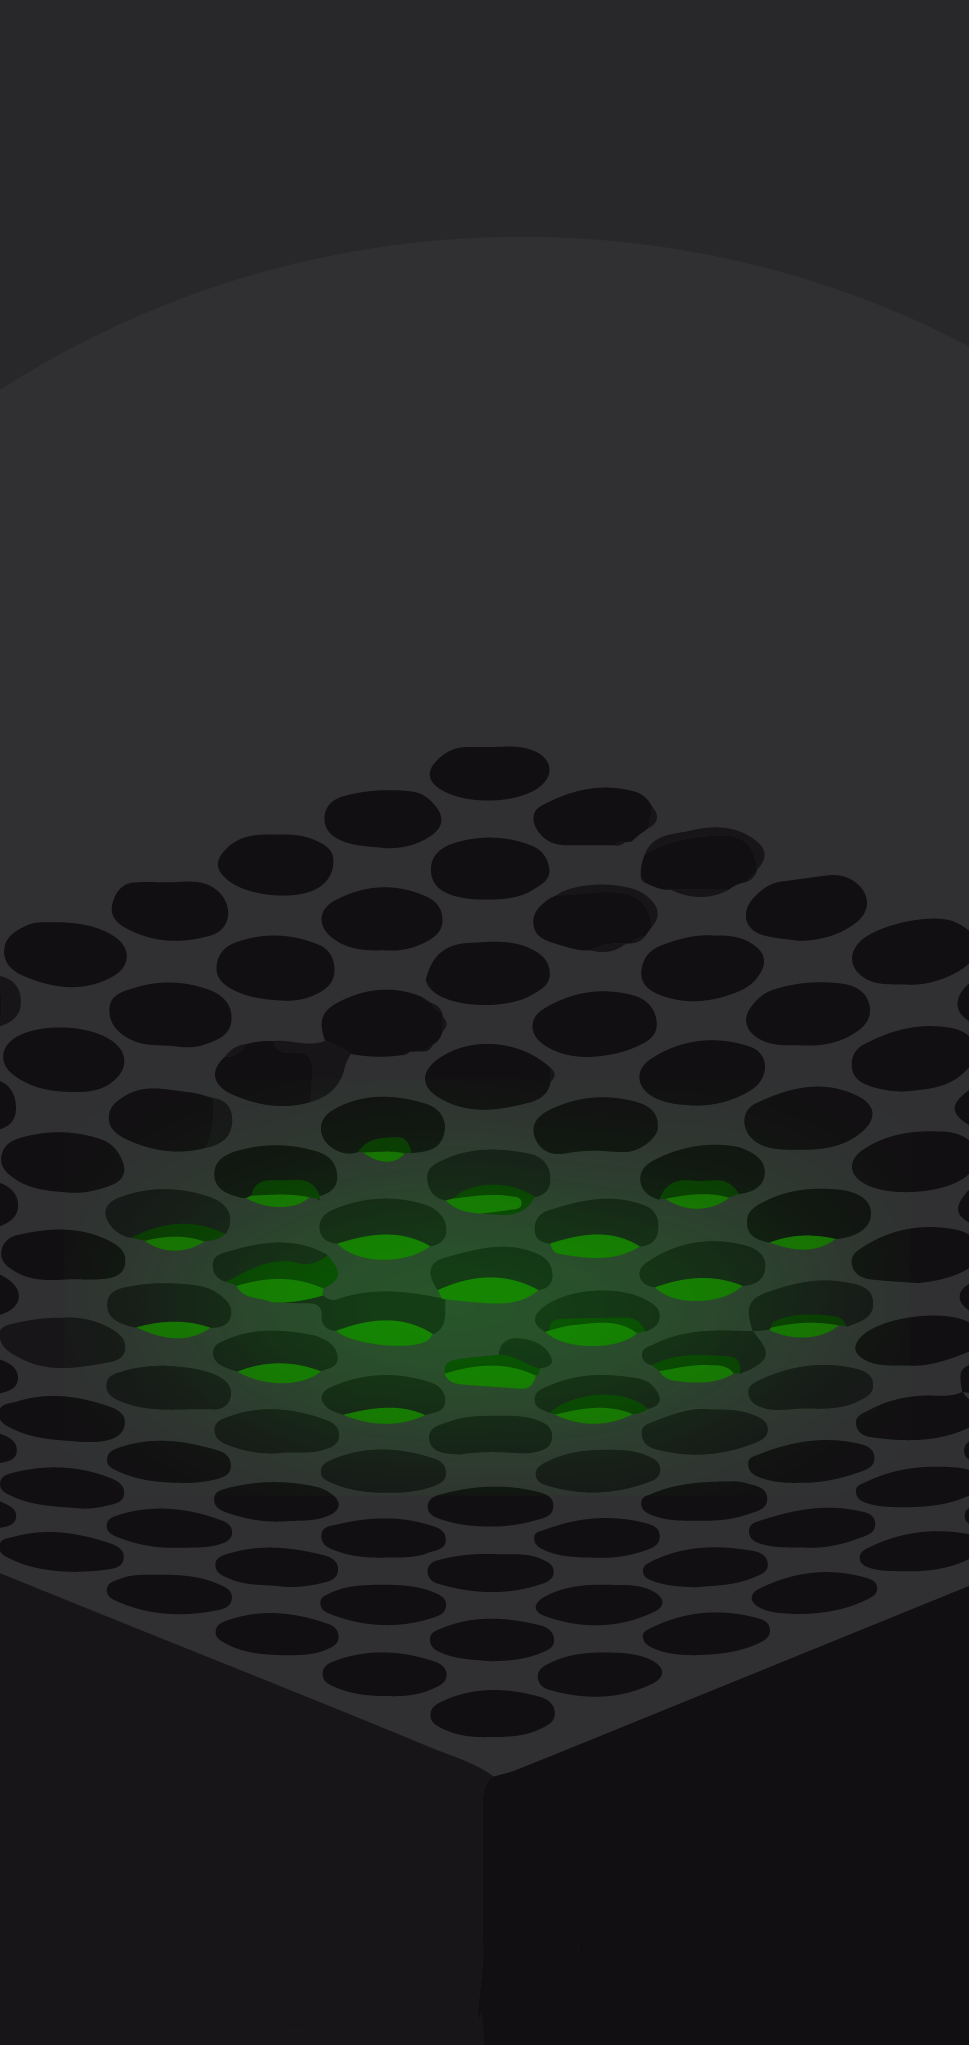 Xbox Series X Wallpaper For Mobile Wallpaperize